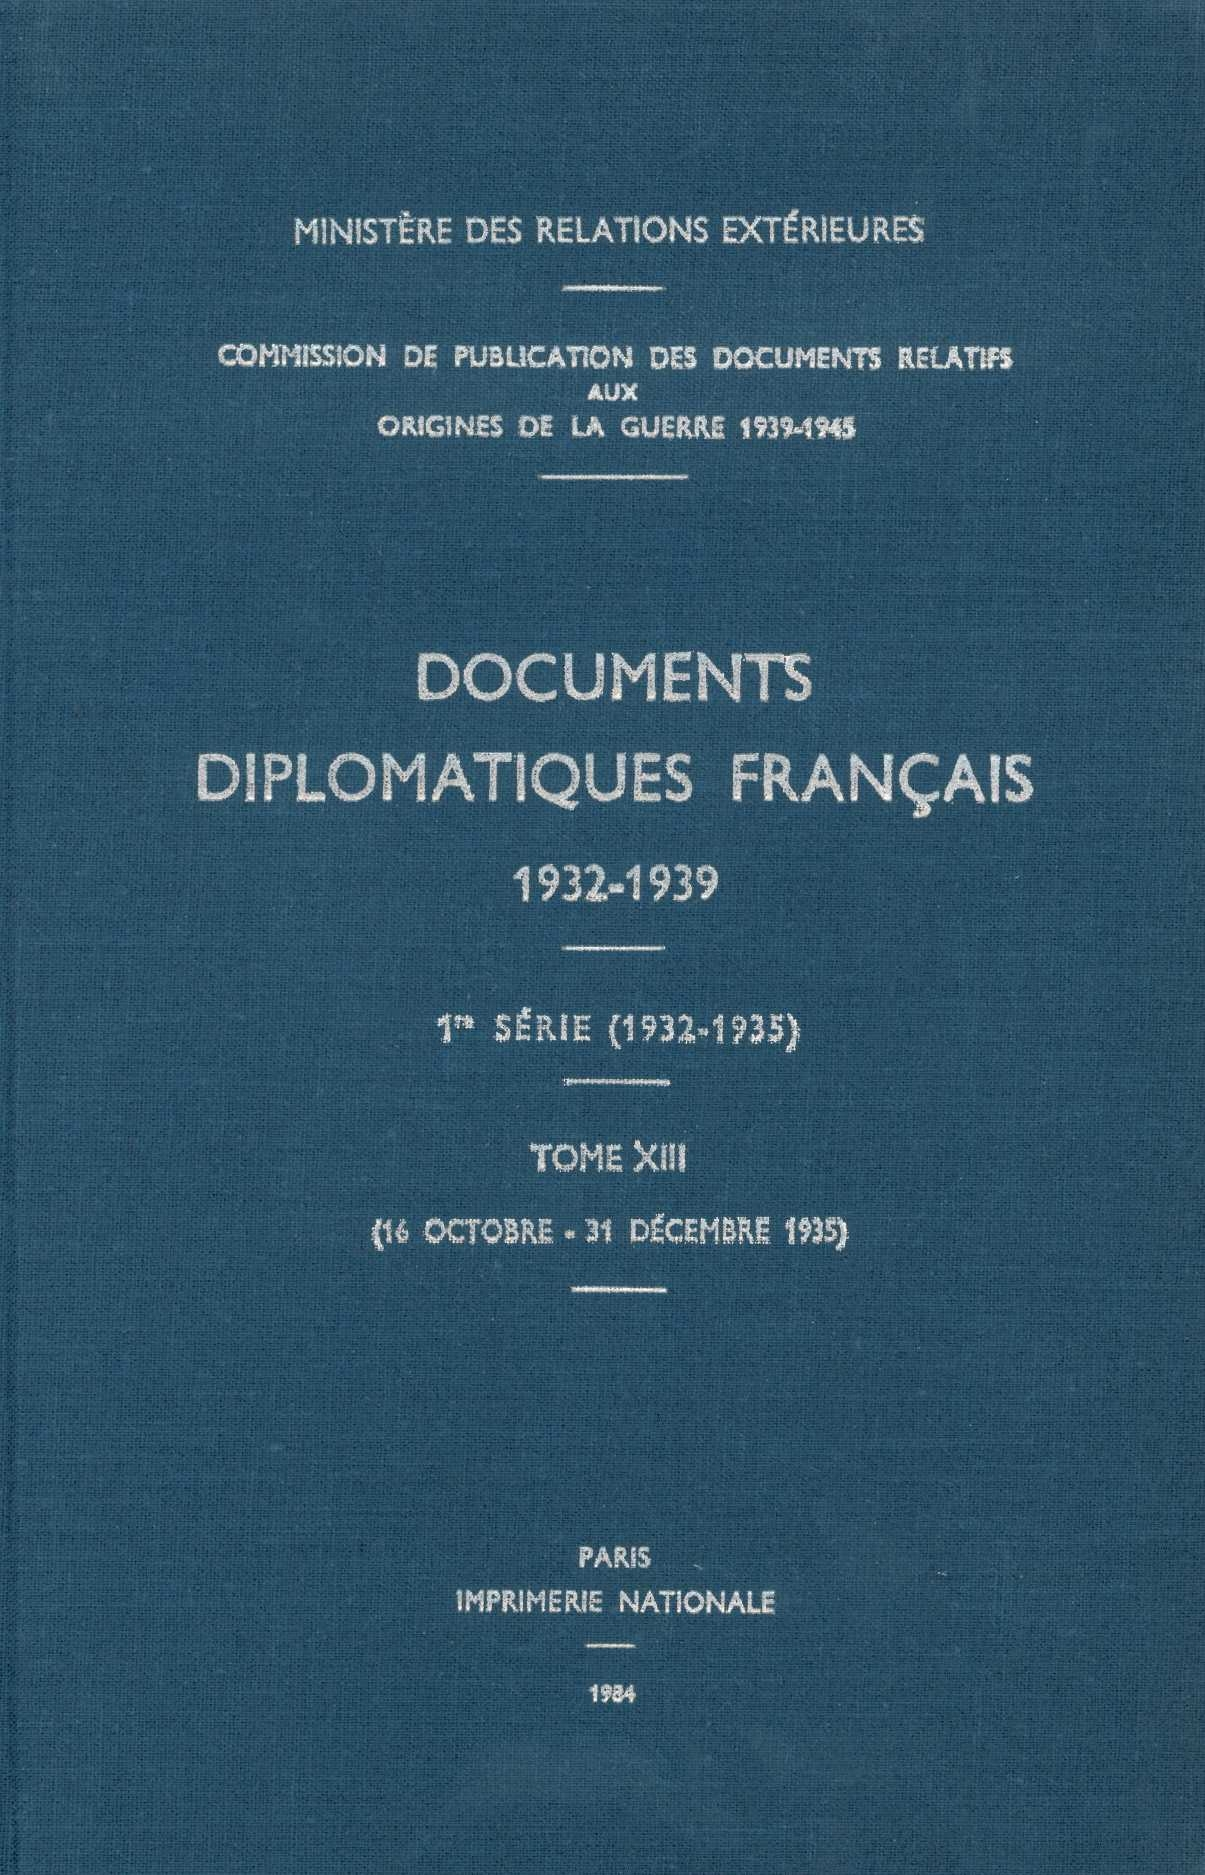 DOCUMENTS DIPLOMATIQUES FRANCAIS - 1935 - TOME V (16 OCTOBRE - 31 DECEMBRE)